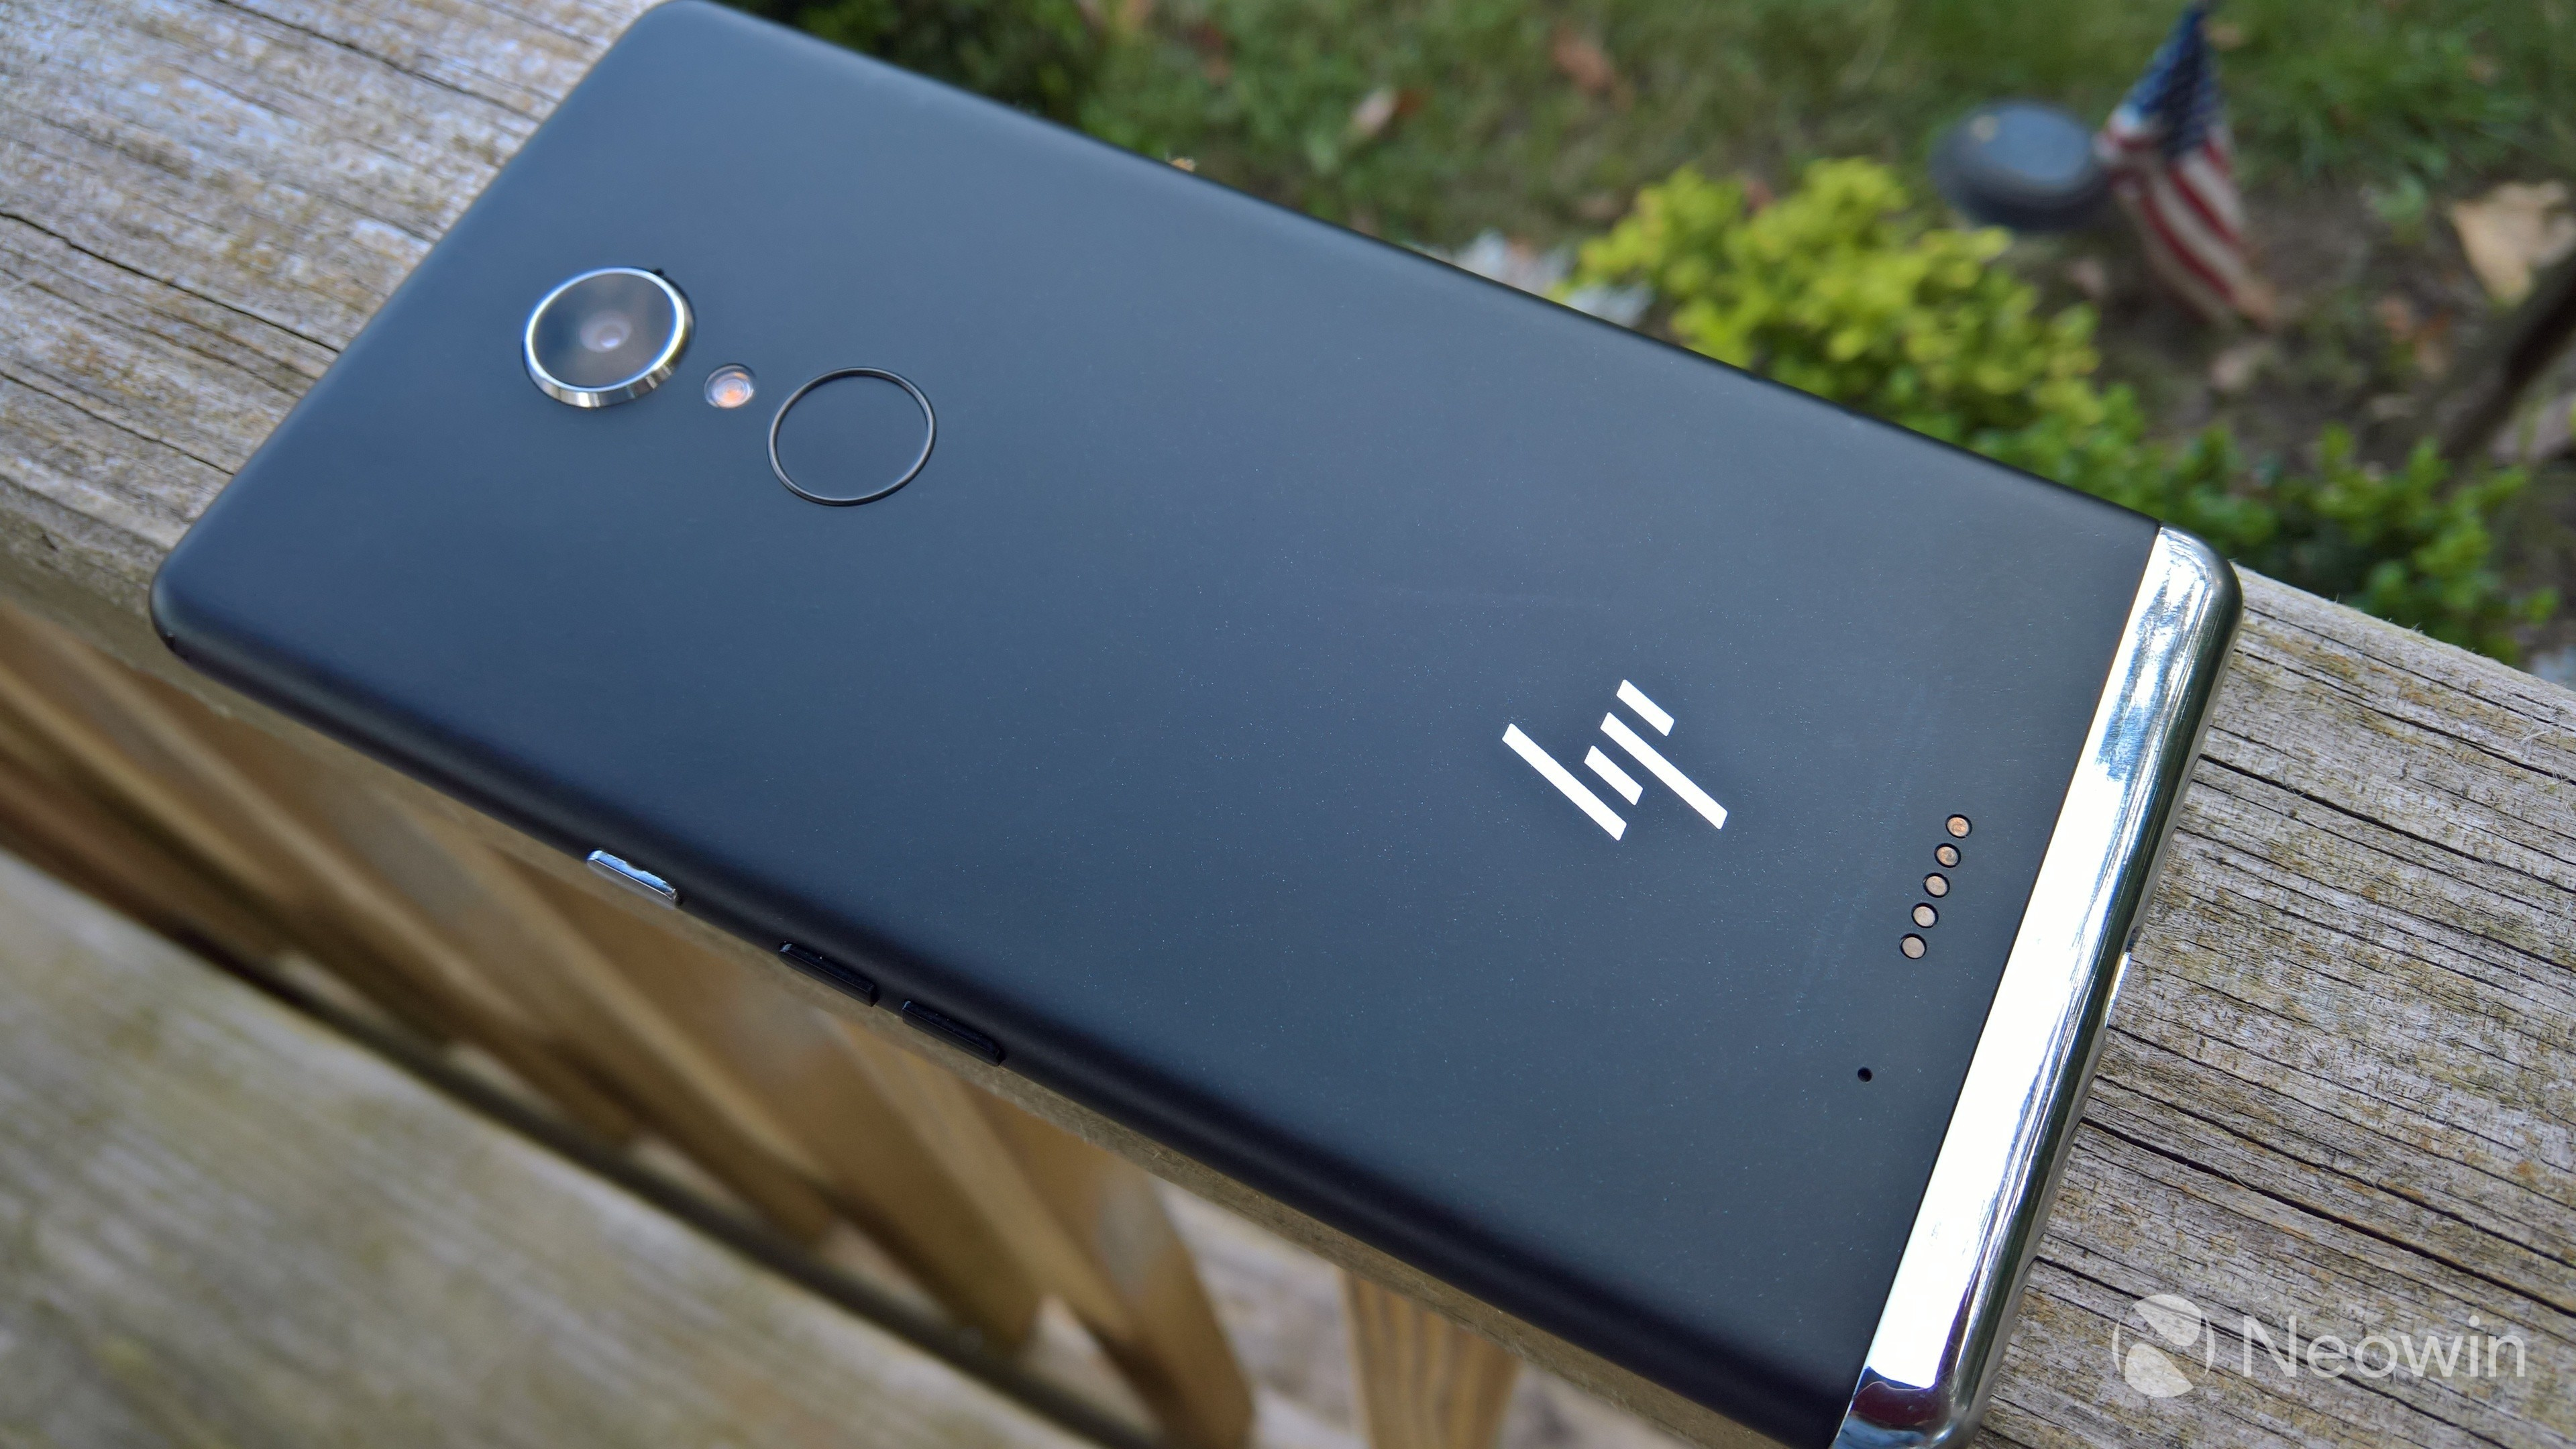 hp elite x3 lap dock firmware update without phone